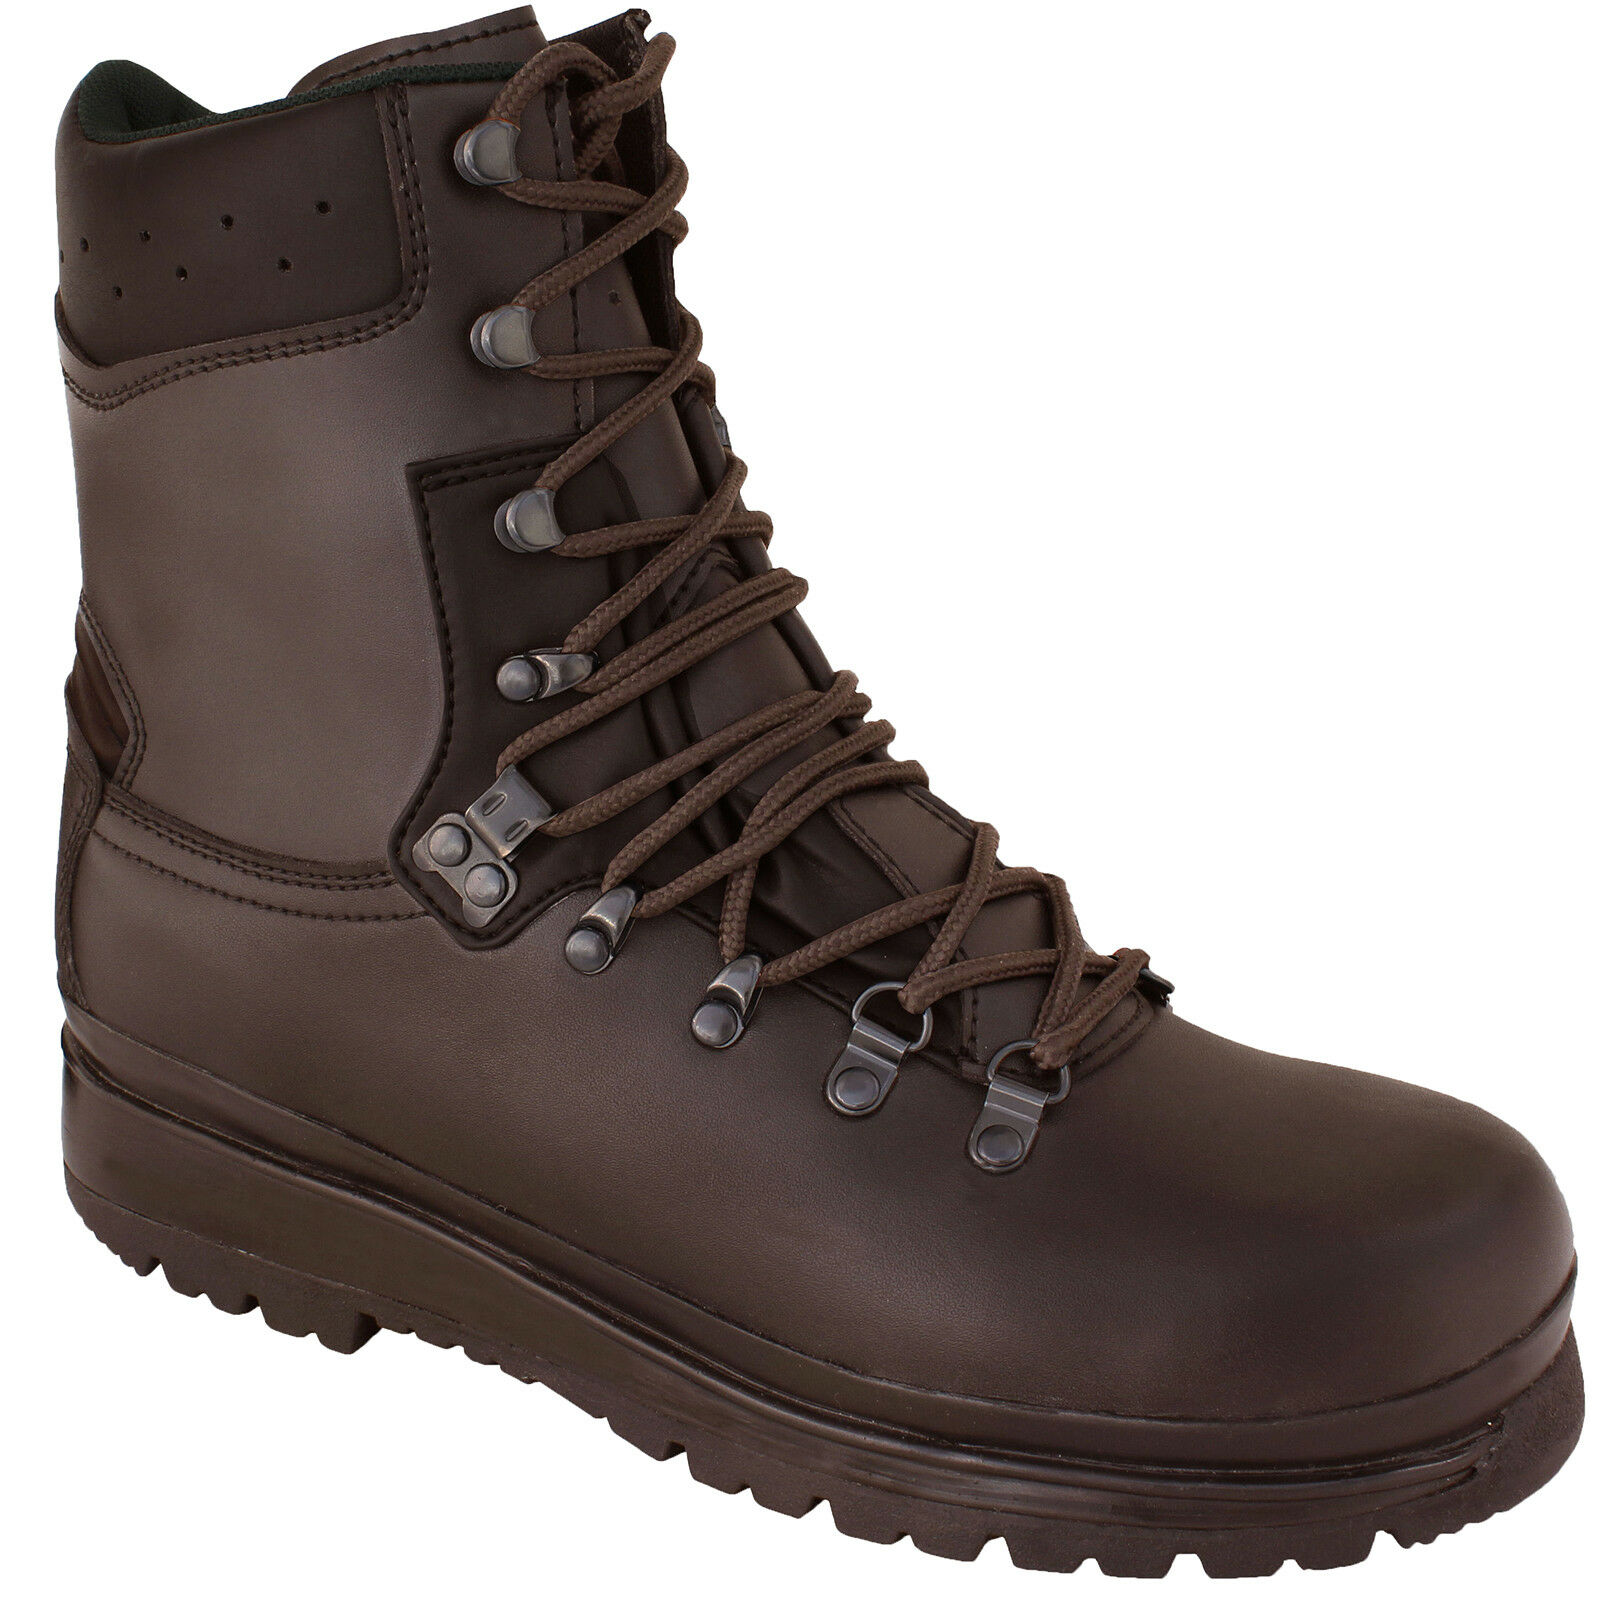 Waterproof Brown Leather Tactical Boots ELITE Military Forces Combat Army Patrol